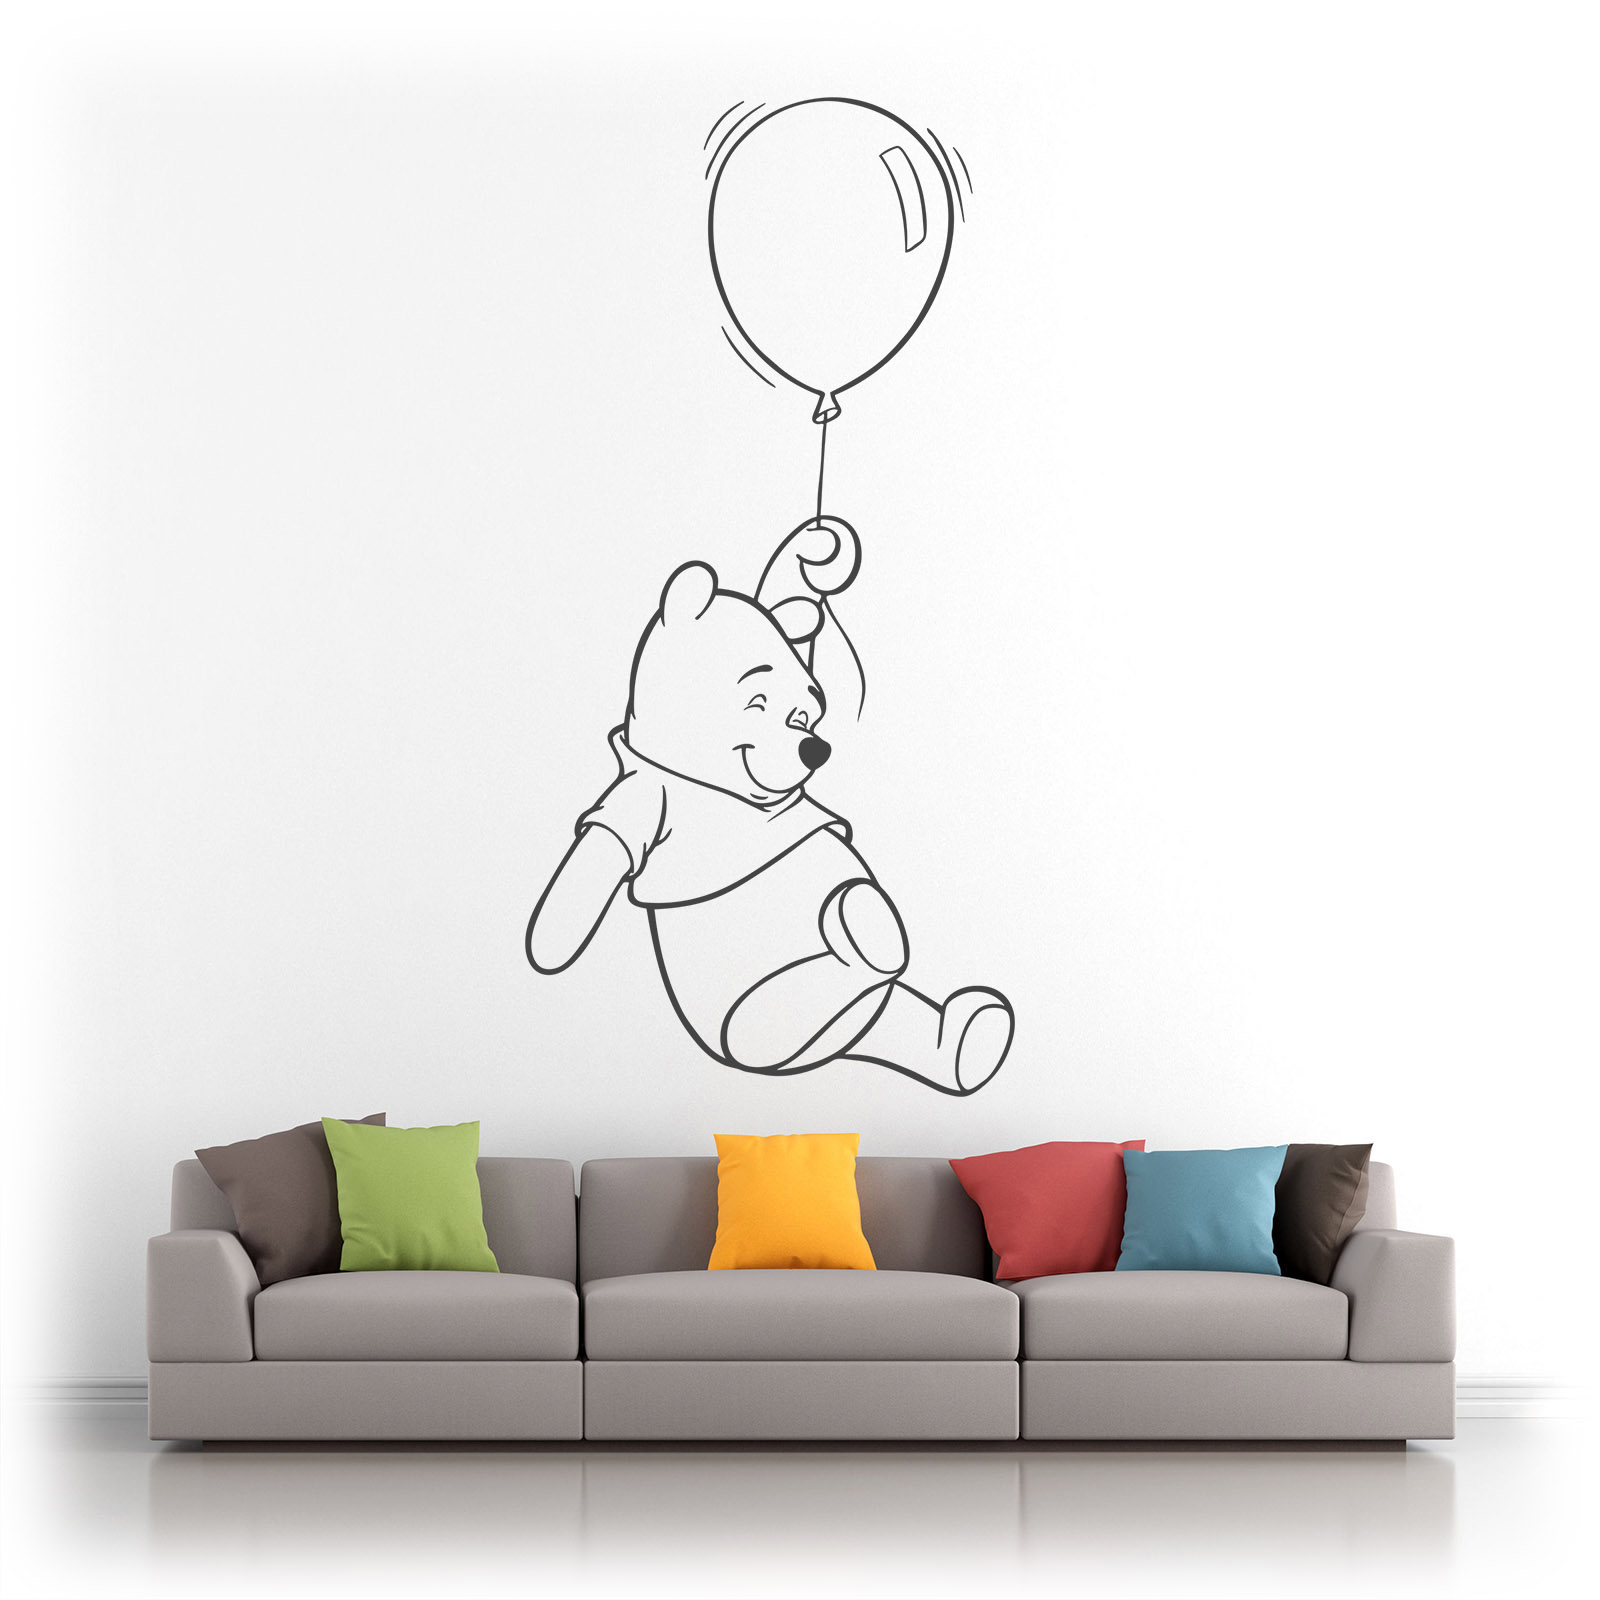 Winnie the Pooh Floating with a Balloon Vinyl Wall Art - Matt Finish  sc 1 st  eBay & Winnie the Pooh Floating with Balloon Vinyl Wall Art Sticker Decal ...